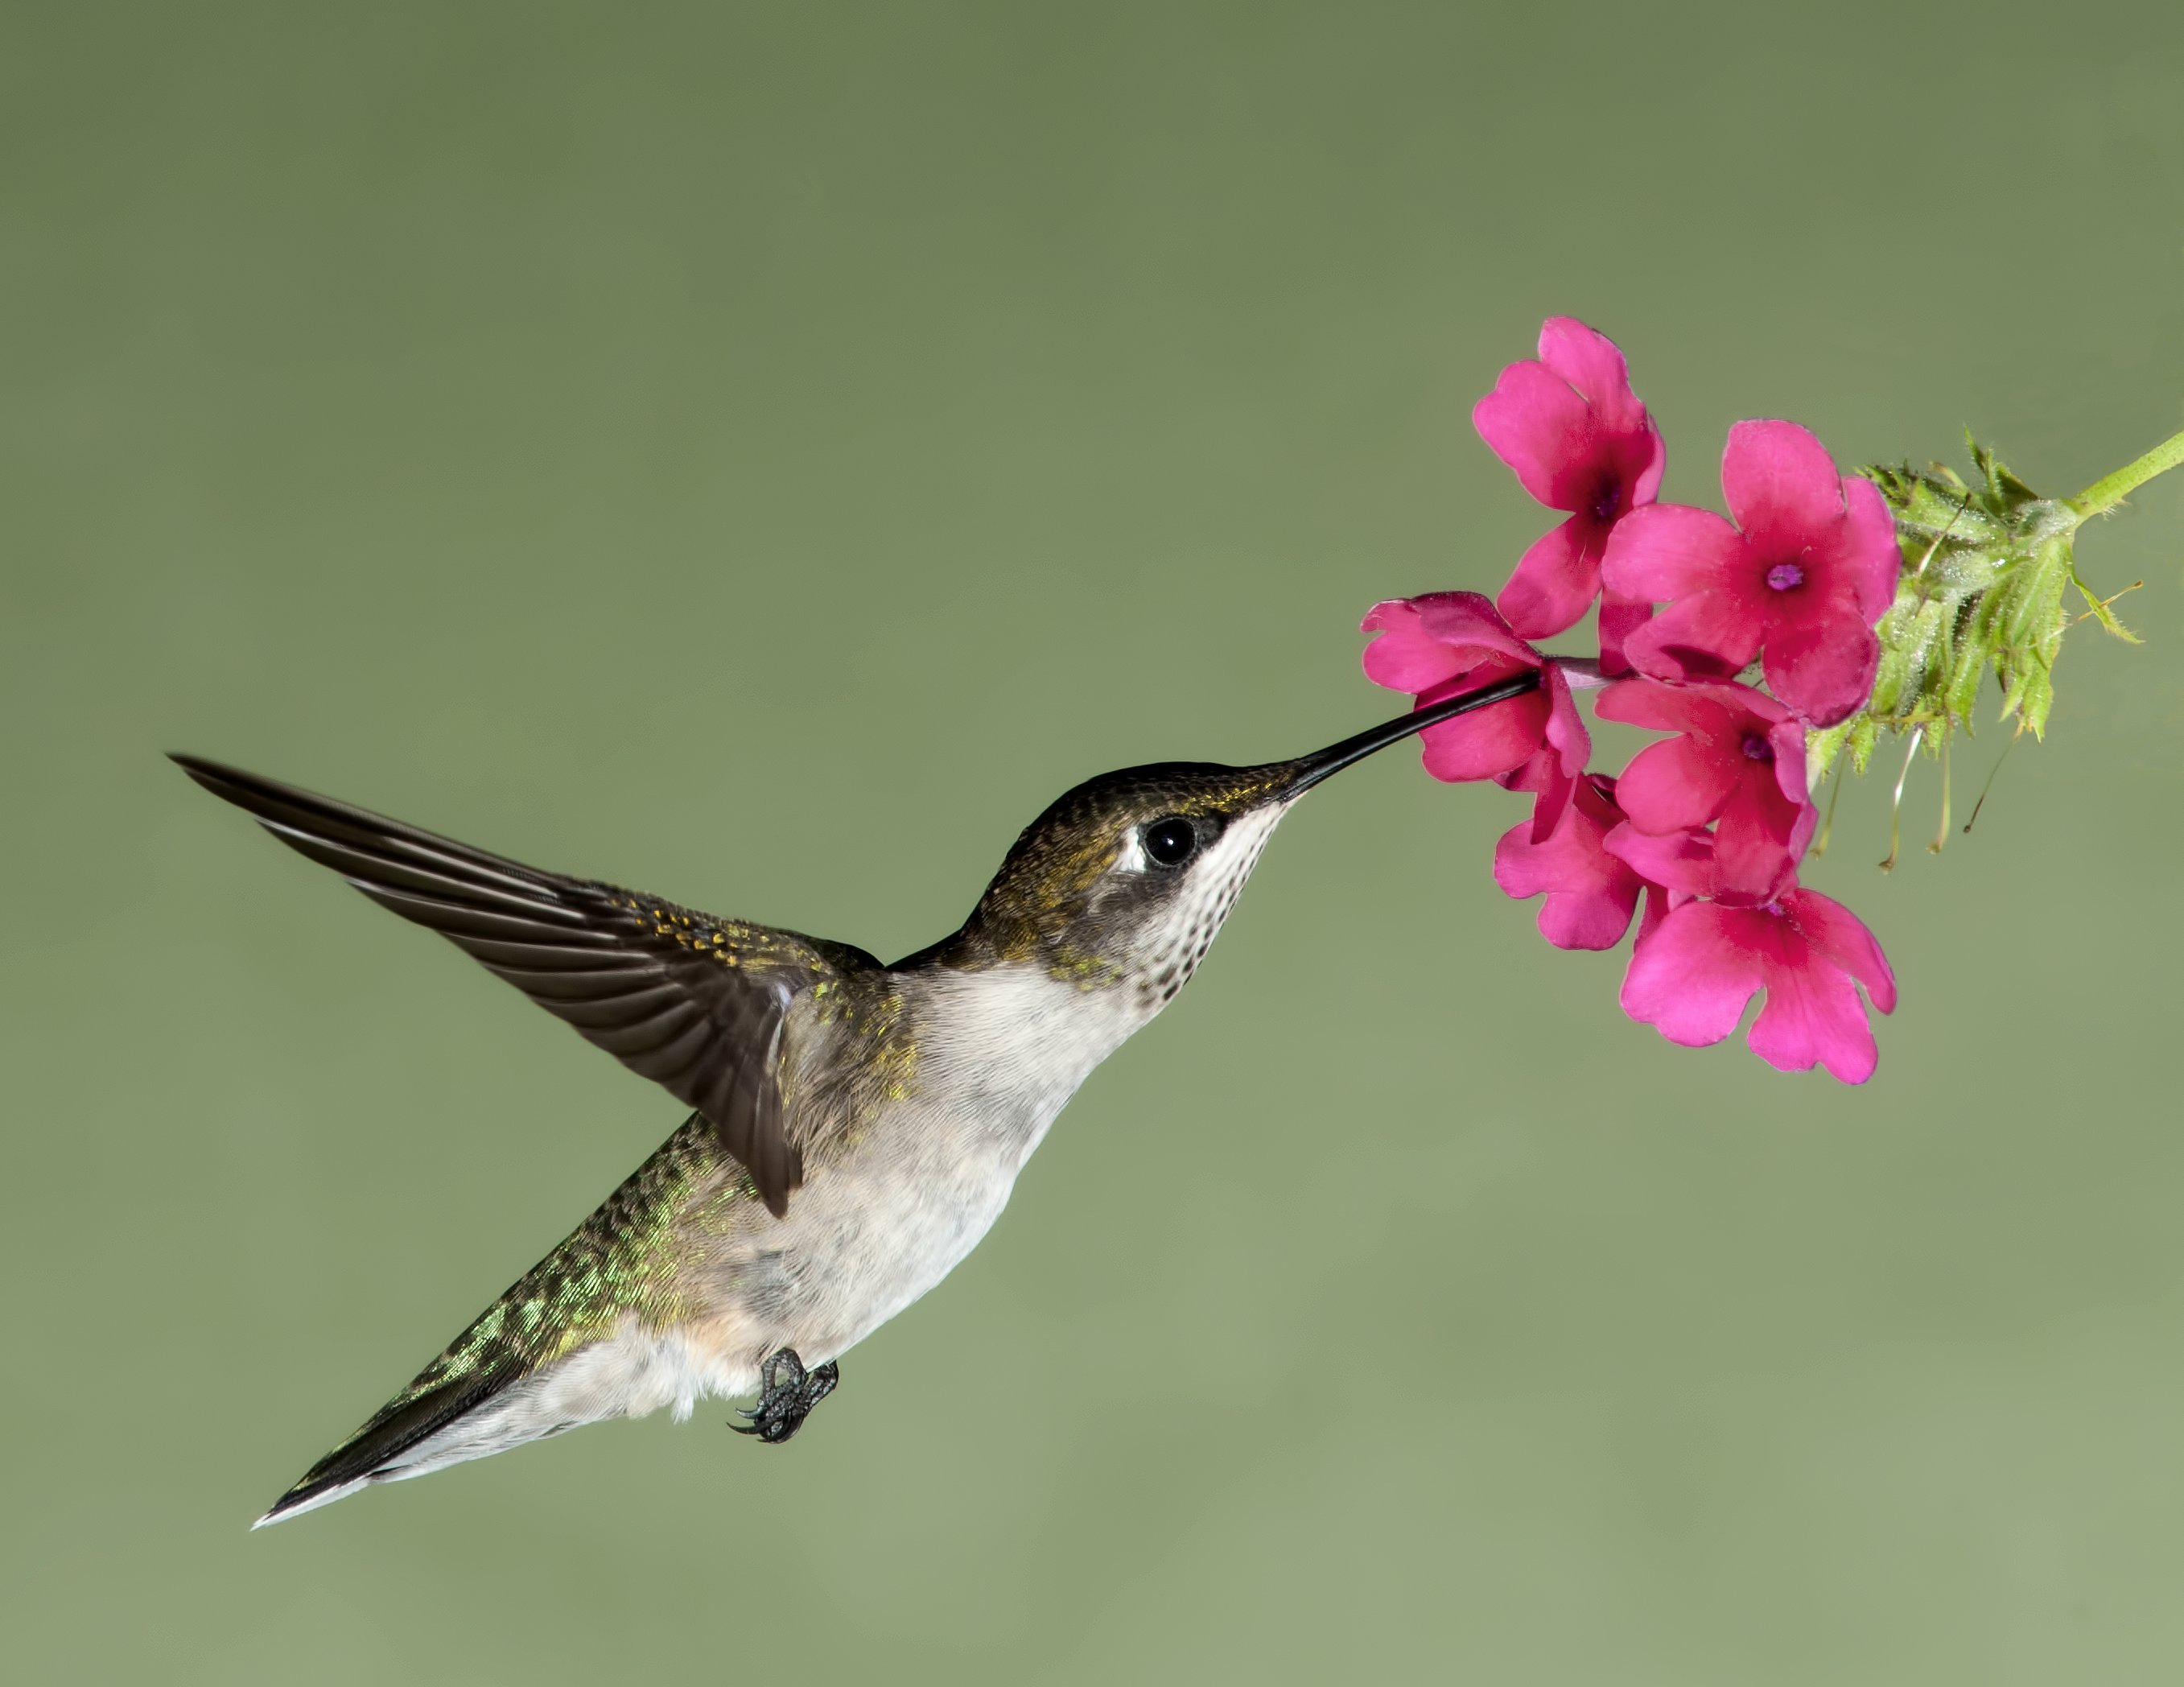 3-But-just-like-the-hummingbird-we-have-evoled-adapted-for-efficiency